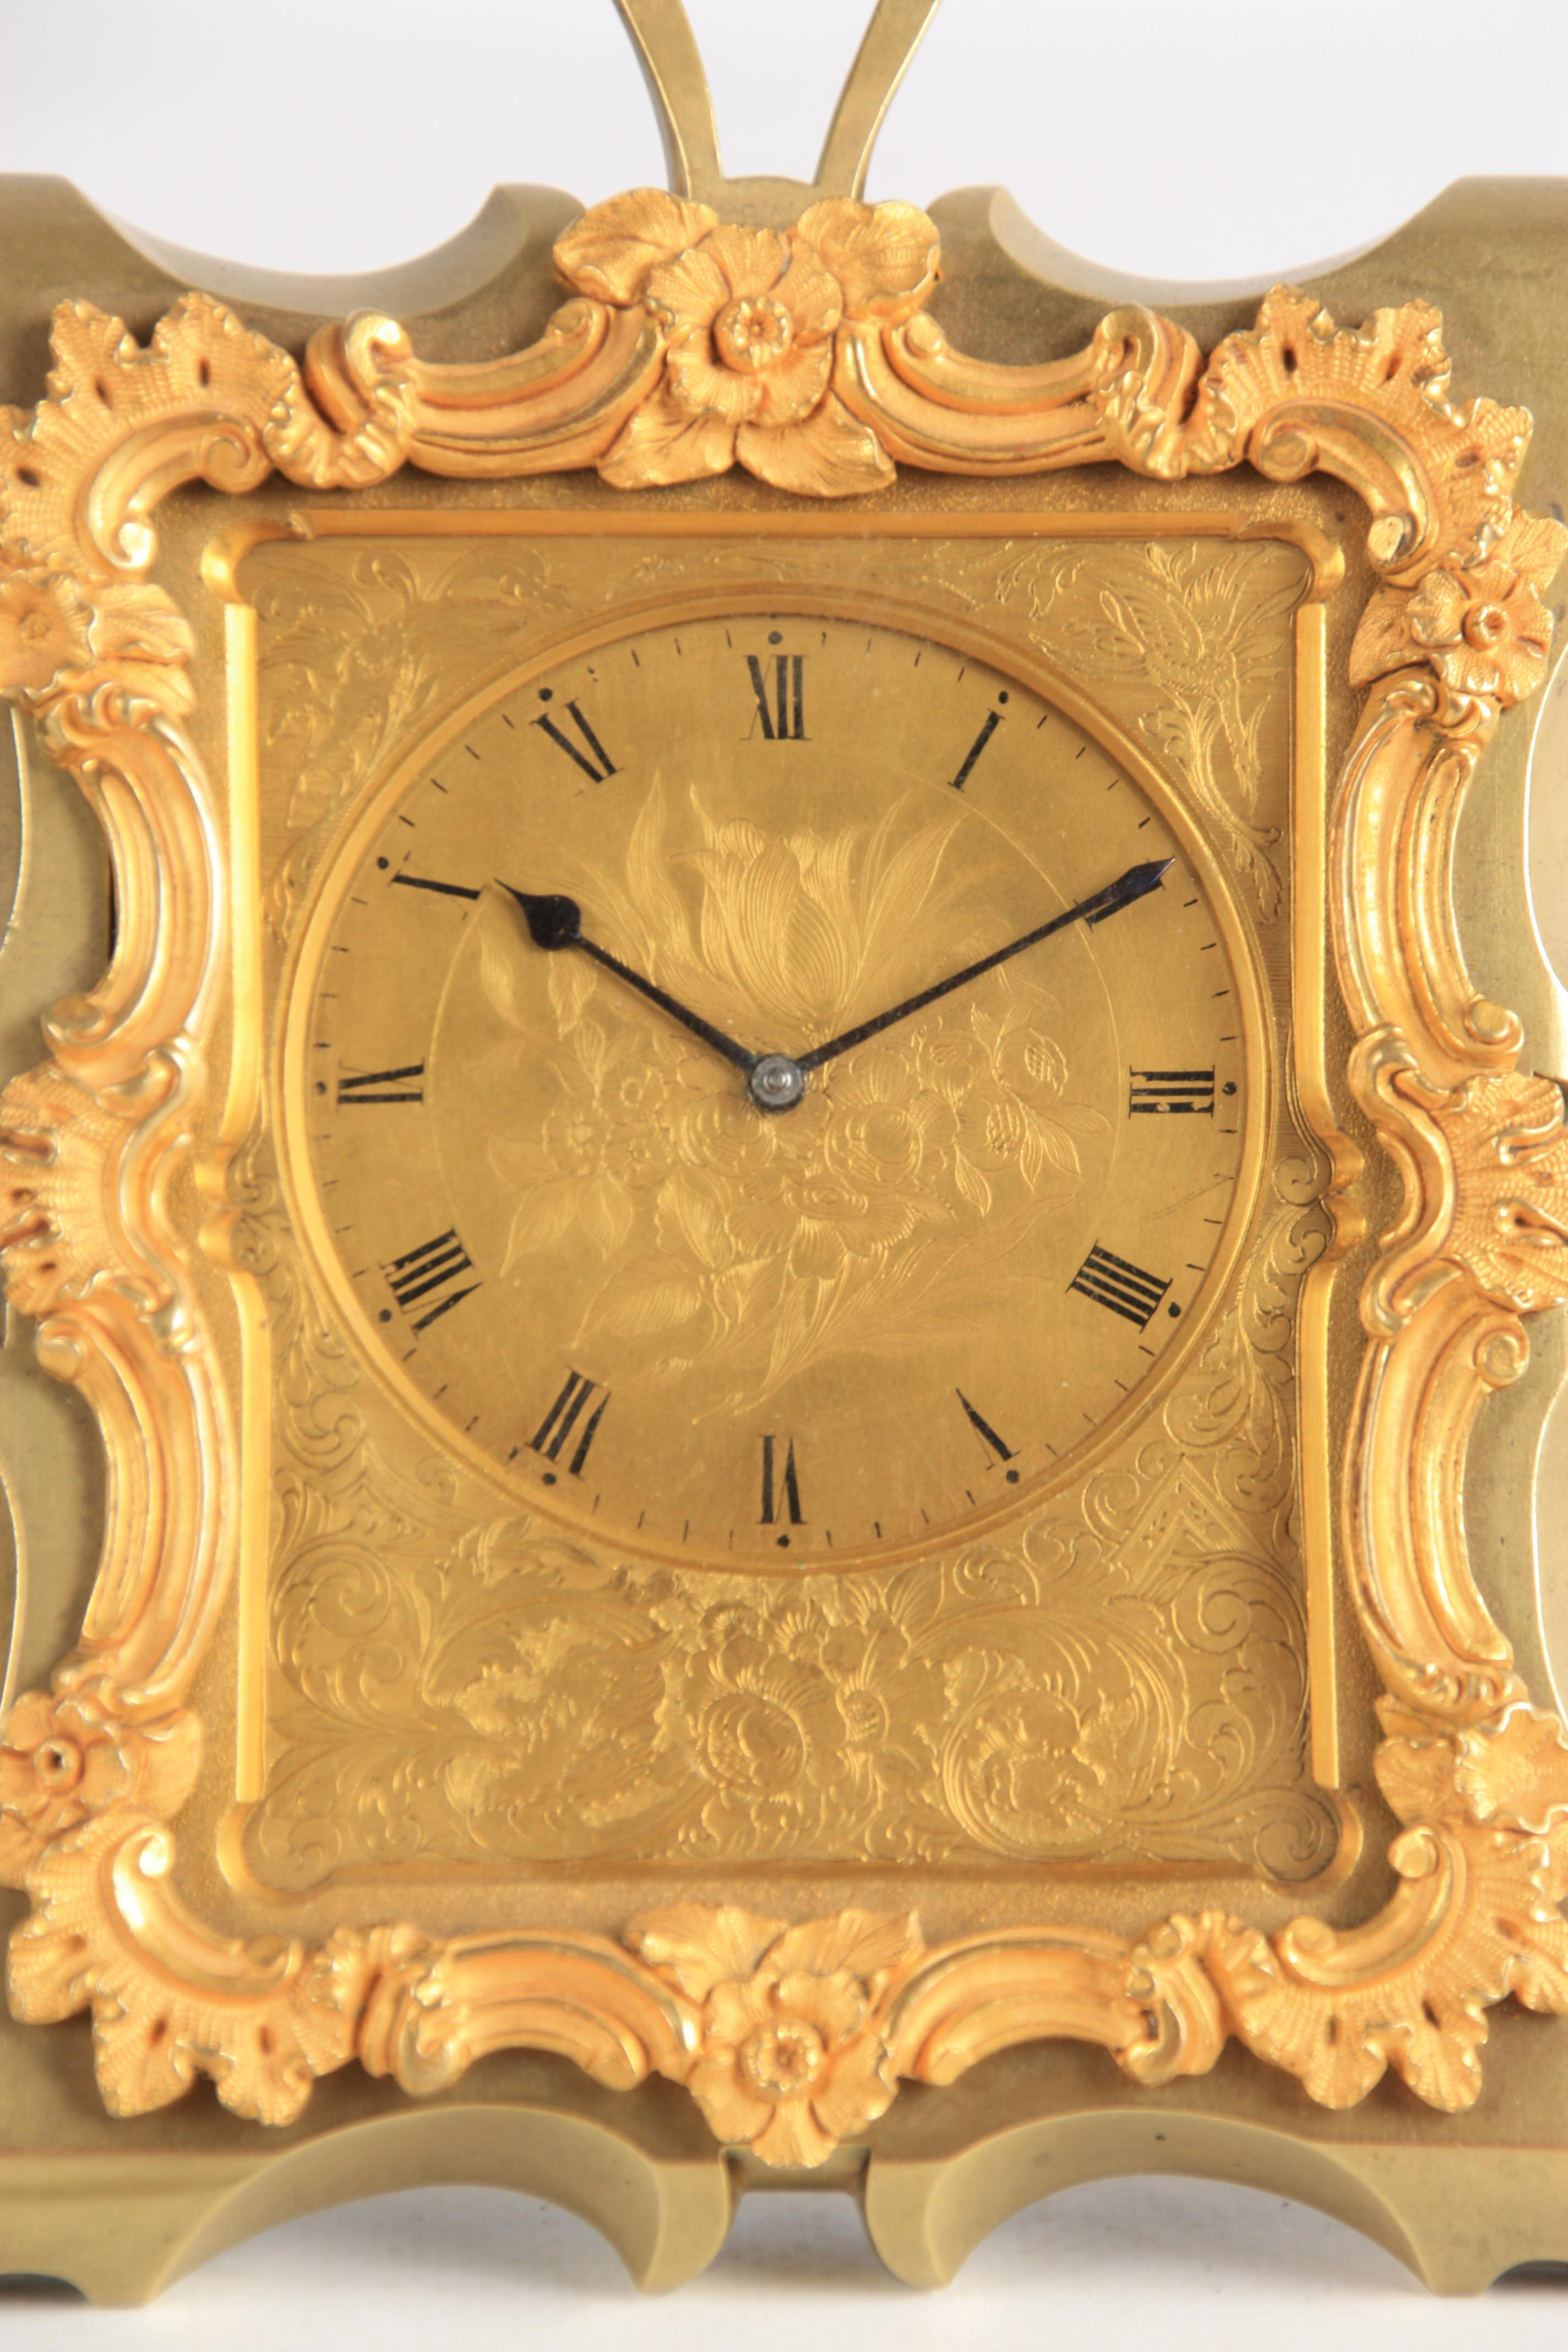 KLEYSER & CO. 66 HIGH STREET, LONDON A MID 19TH CENTURY BRASS STRUT CLOCK IN THE MANNER OF THOMAS - Image 3 of 6